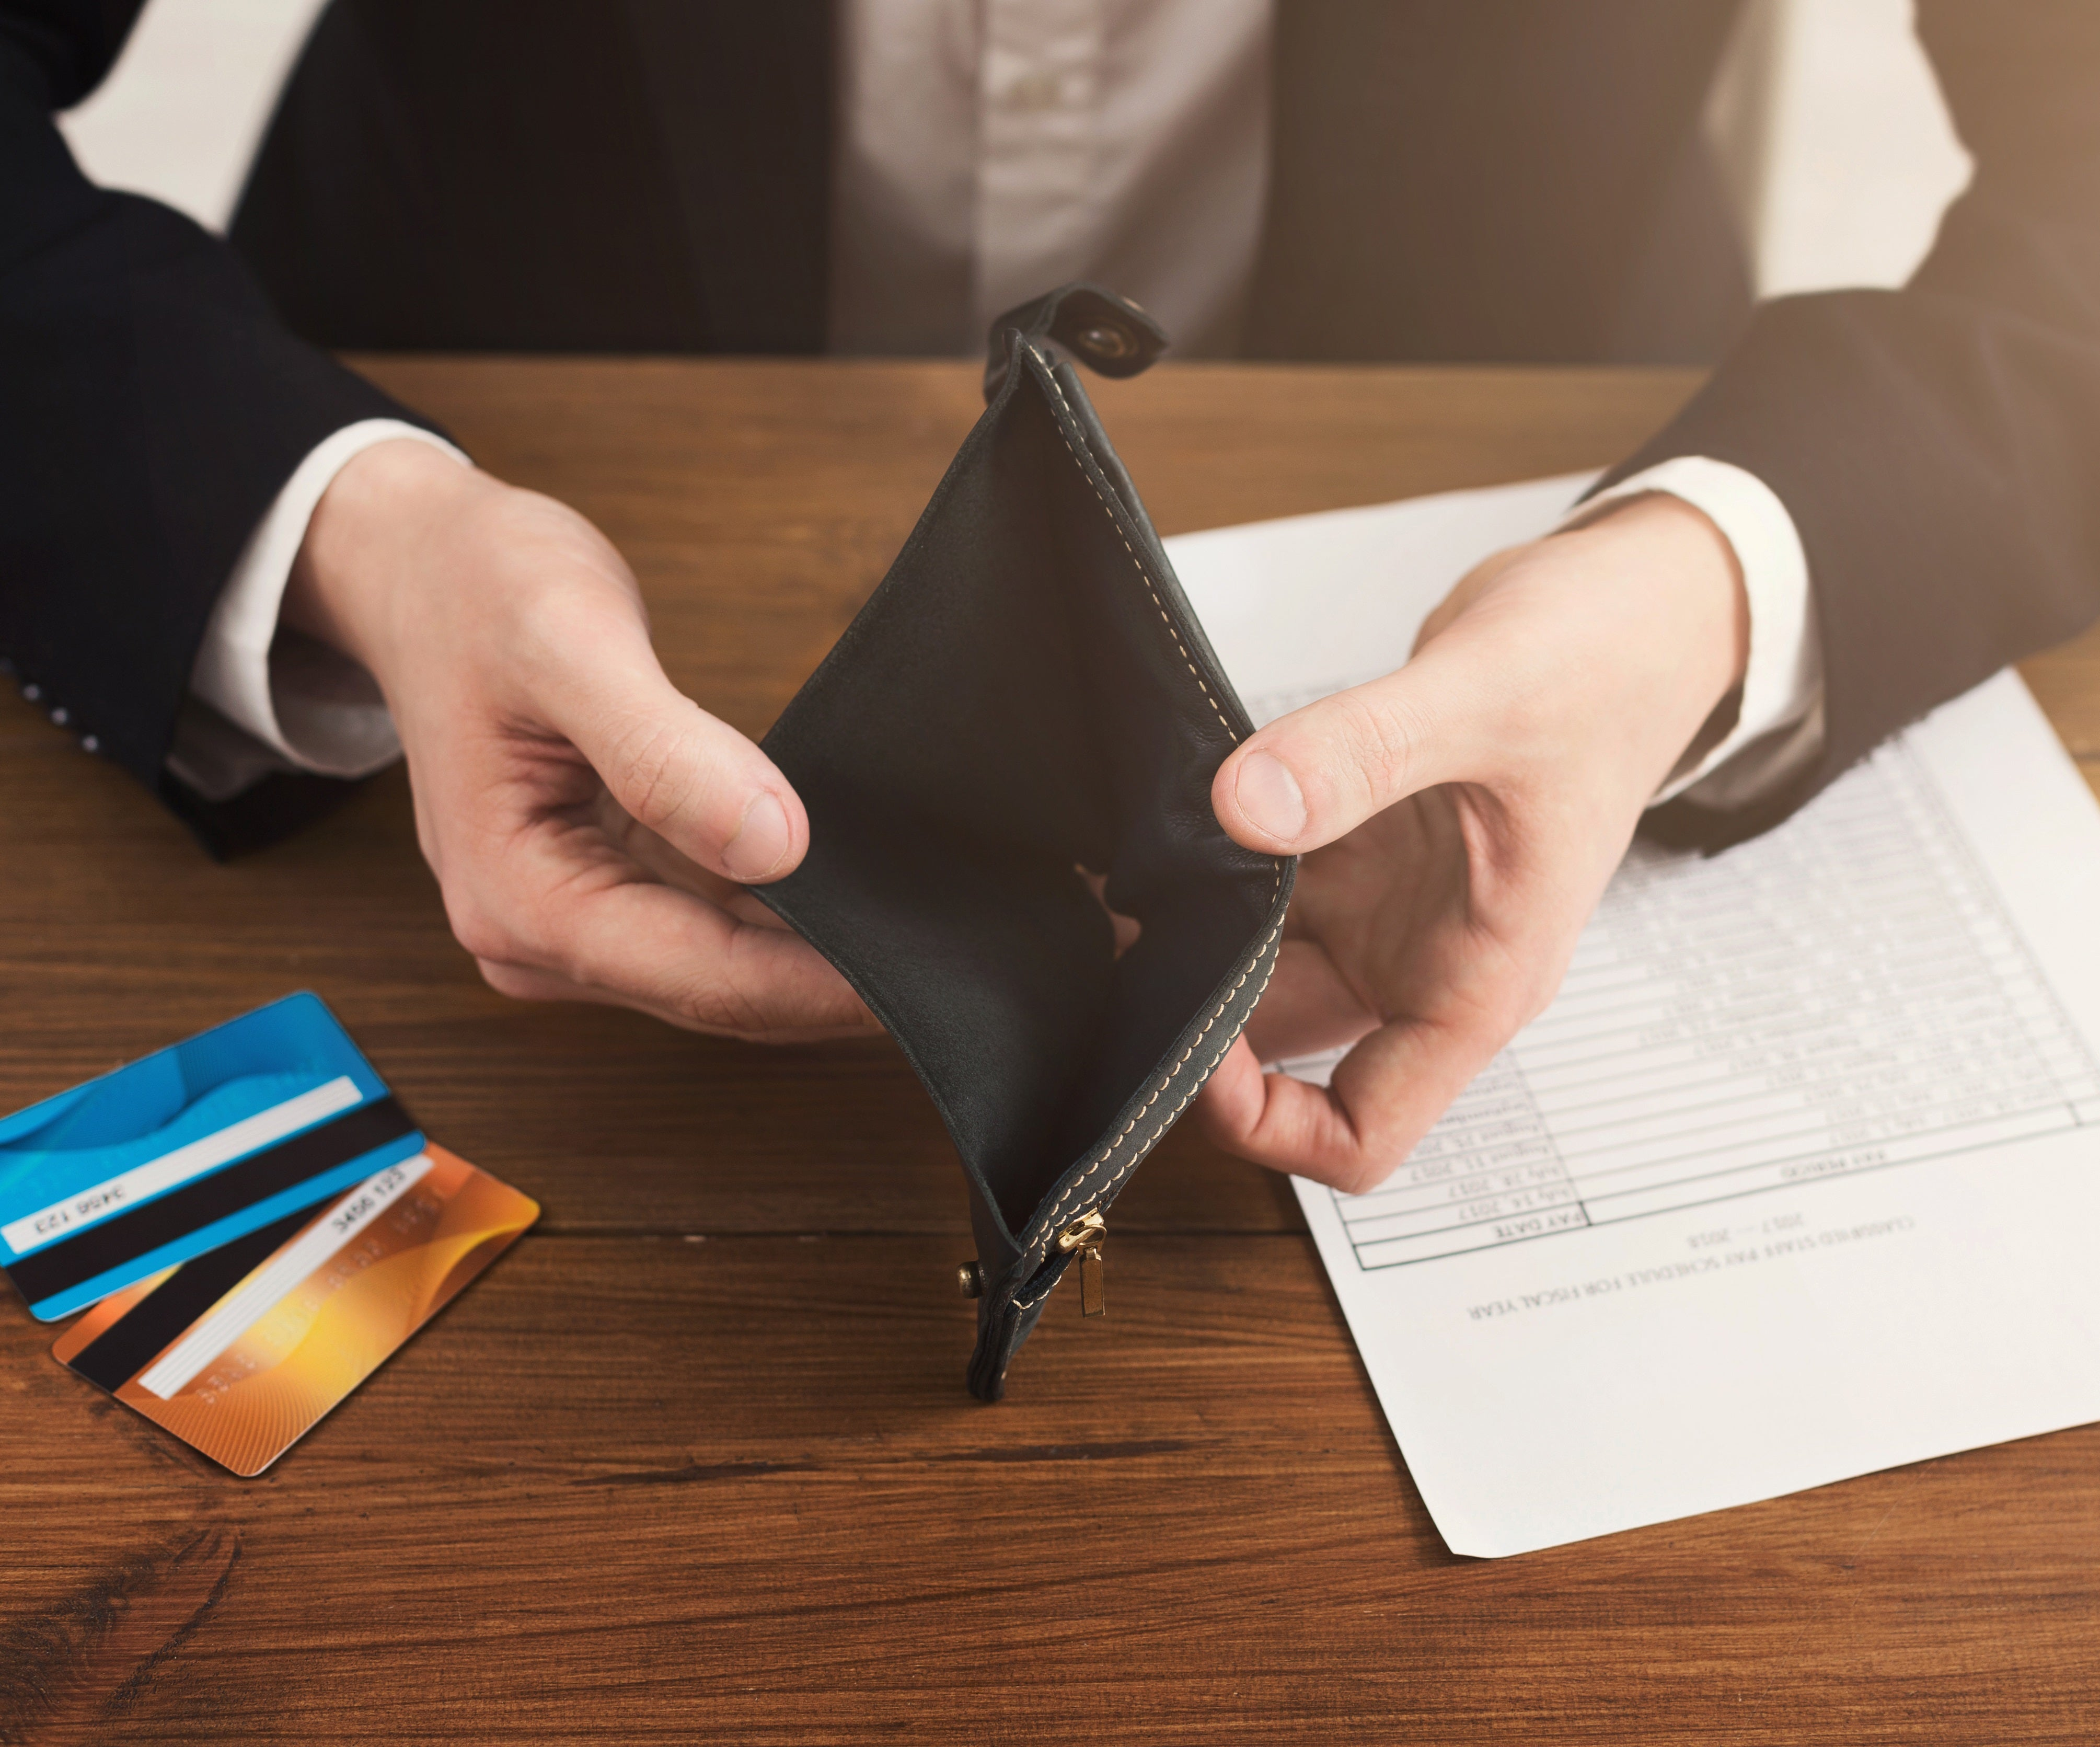 Even People Making 6 Figures Live Paycheck to Paycheck | The Motley Fool